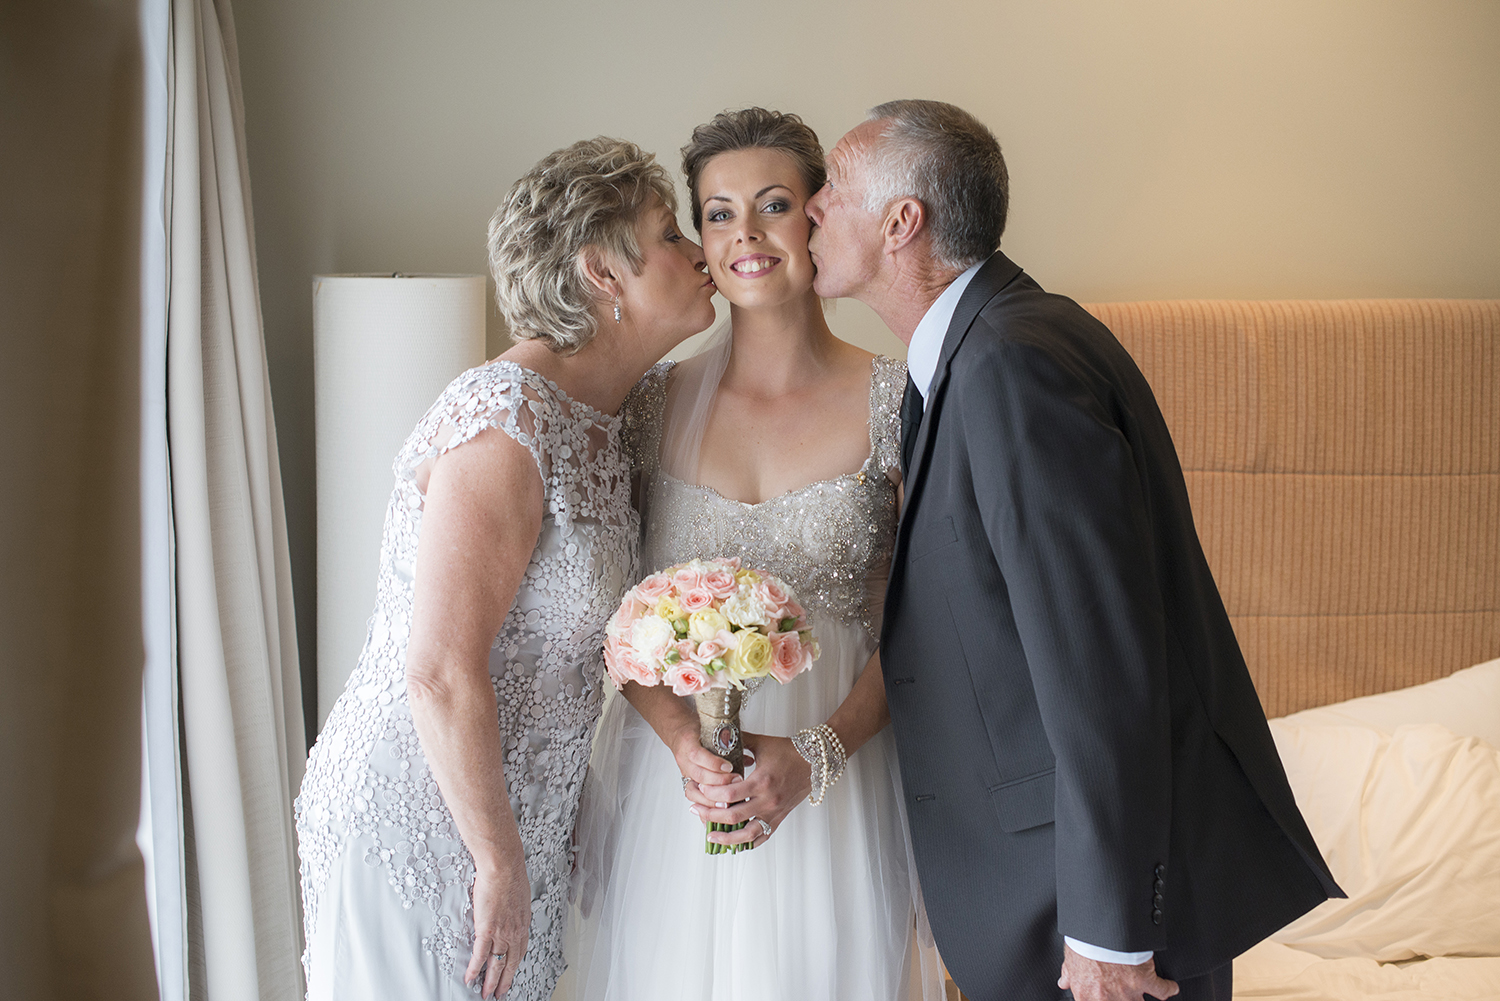 Our Wedding0224.jpg